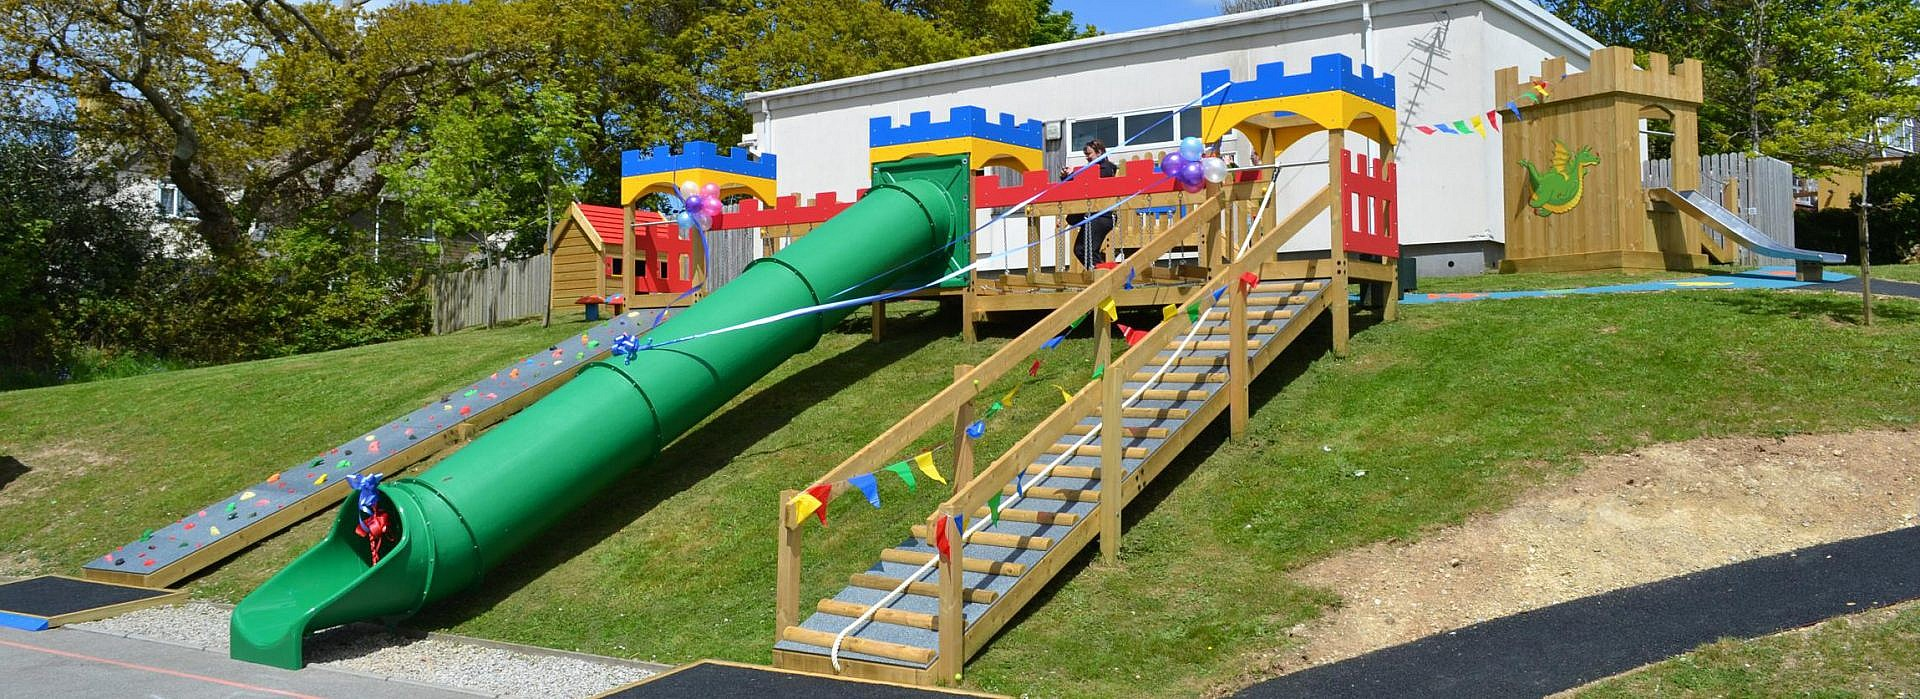 Image result for Outdoor Play Equipment